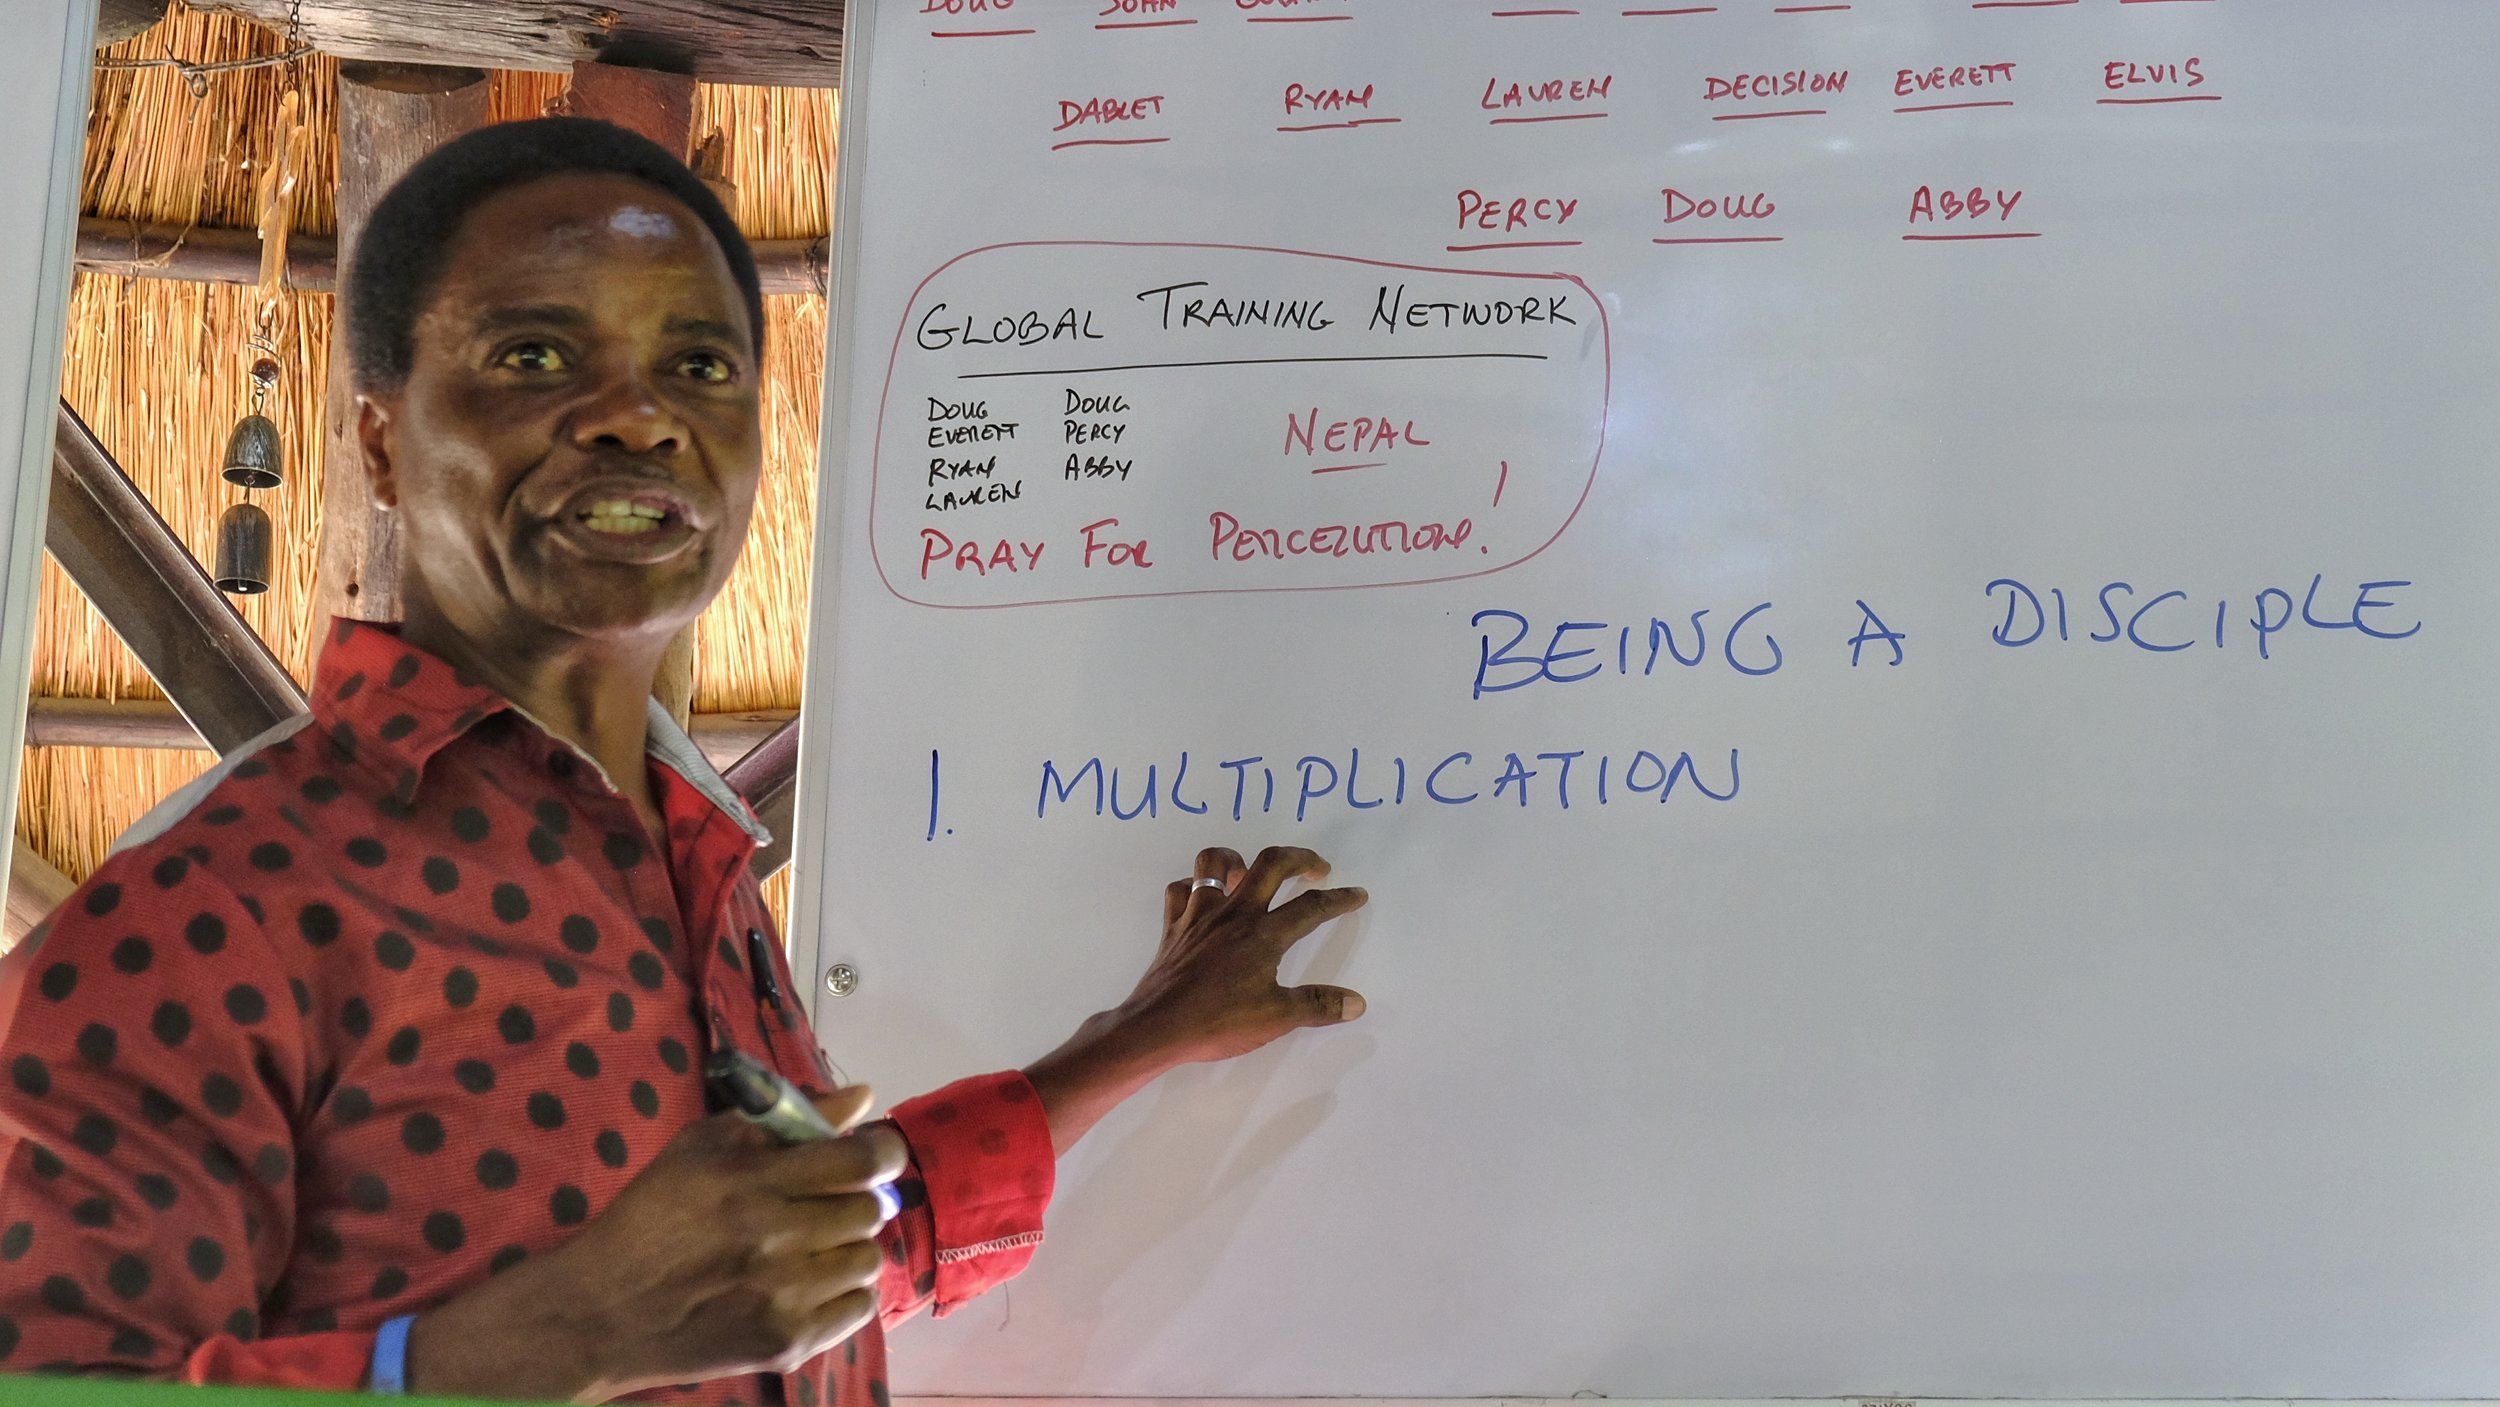 It was an unexpected joy to see our dear friend and former student, Pastor Arold Mudenda, teaching principles of discipleship multiplication during two days of training in Livingstone, Zambia!